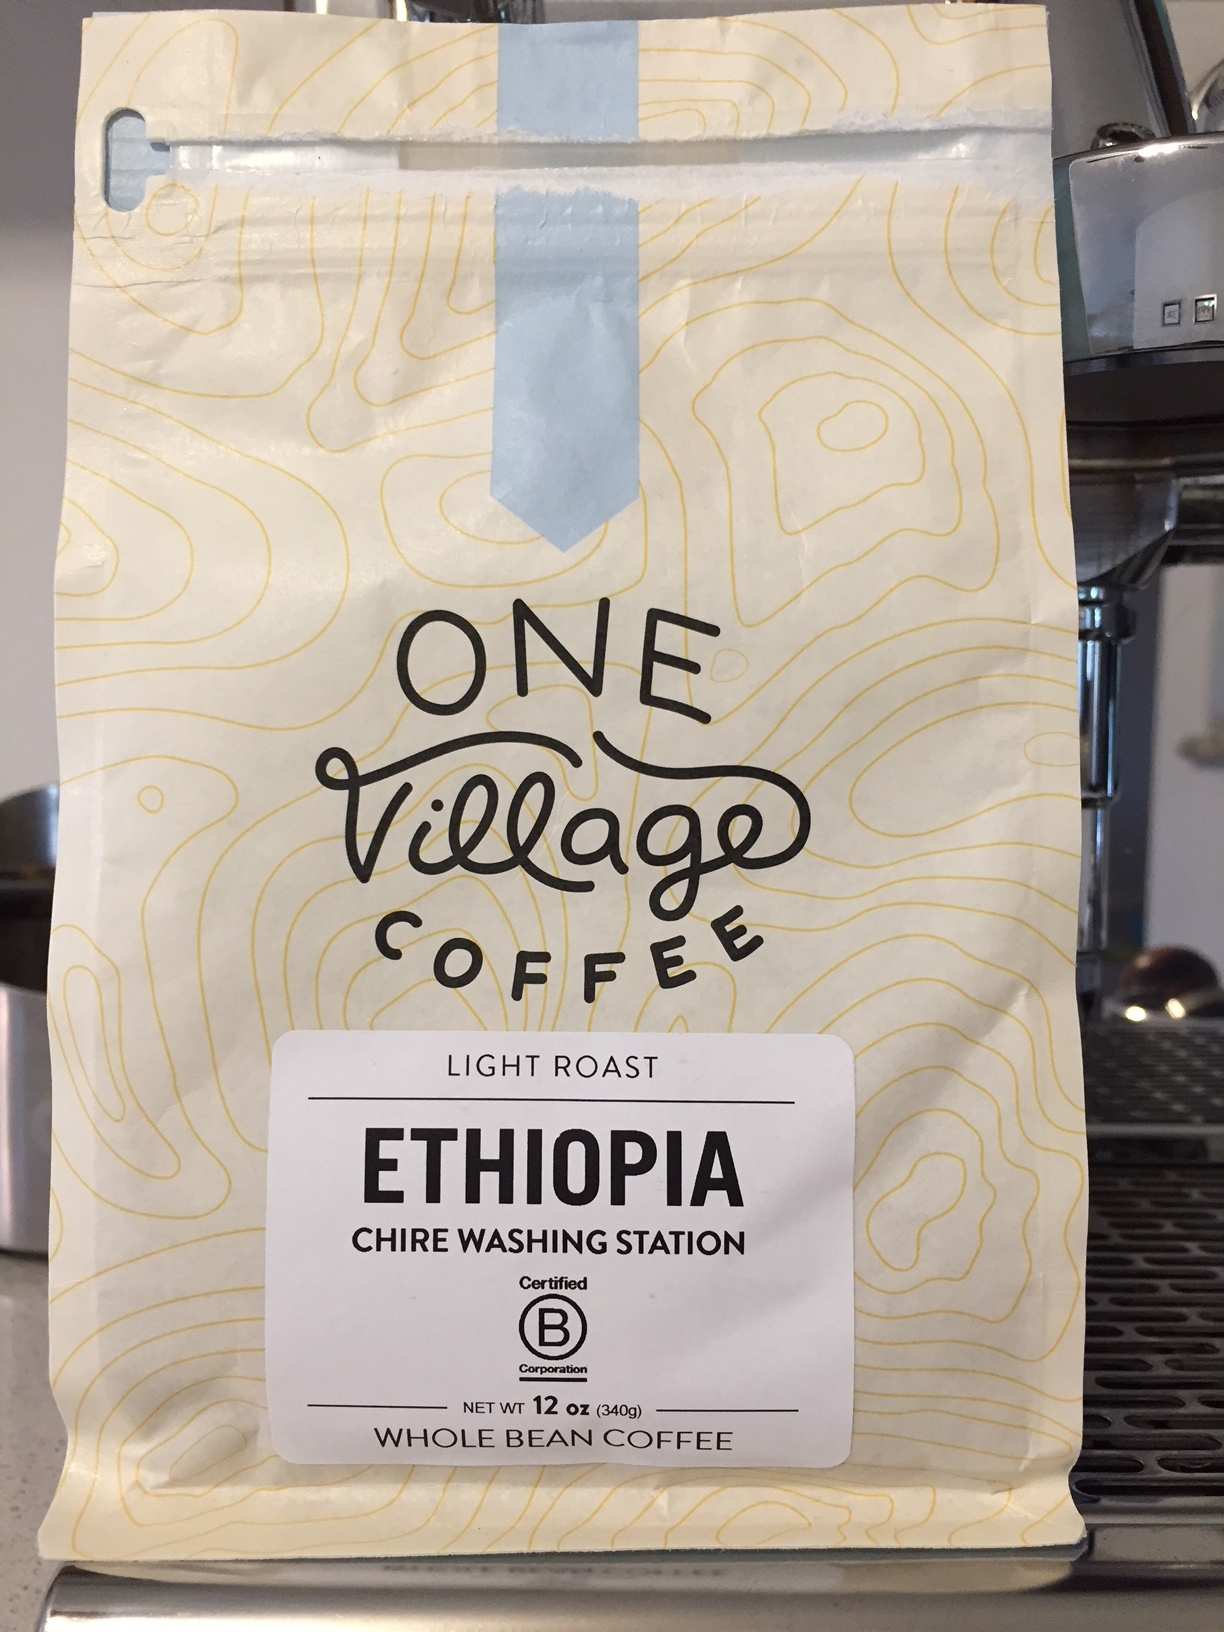 I discovered One Village from Crema.co, click through for $10 off your first order.